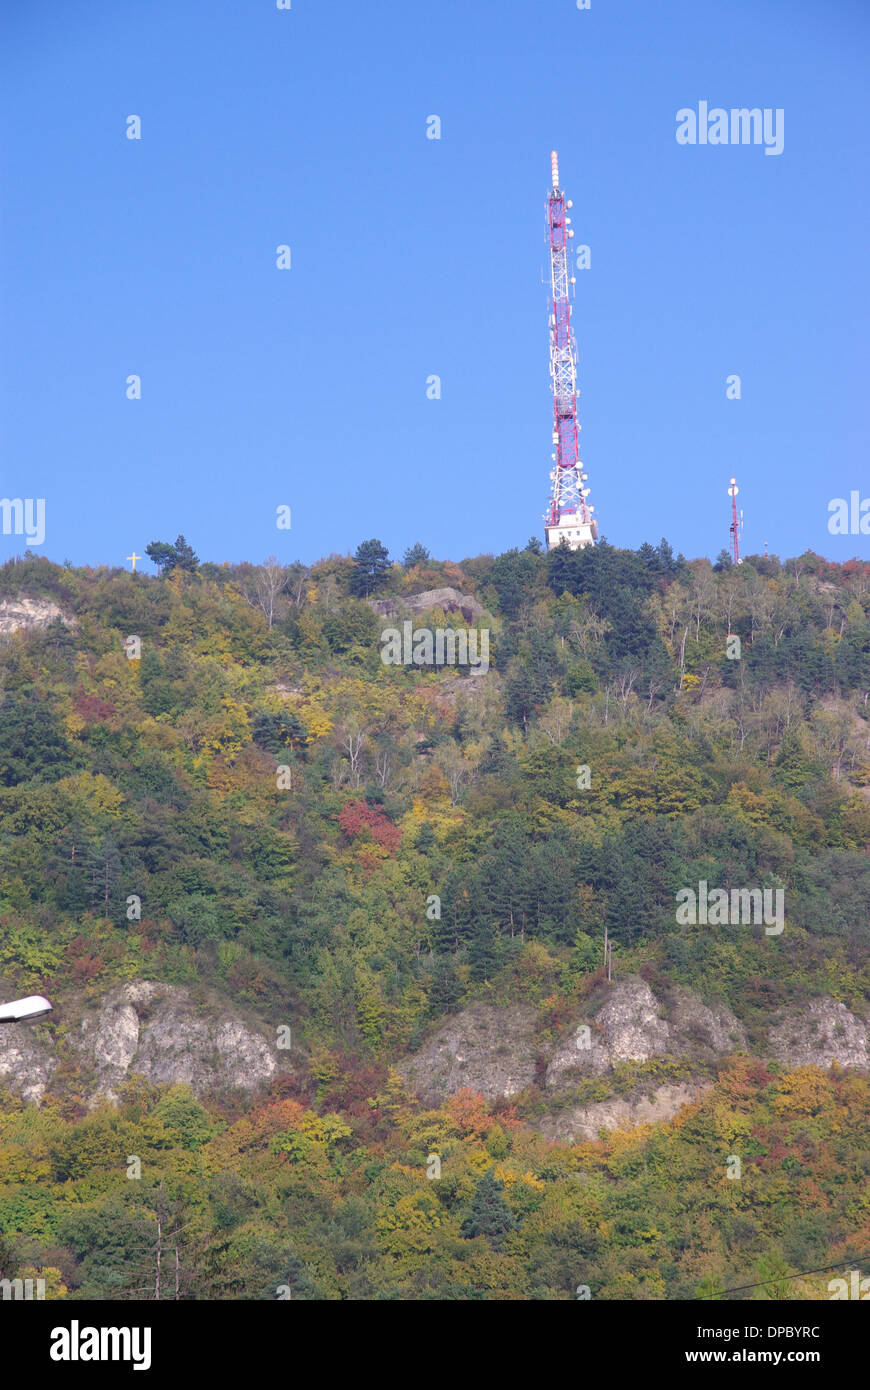 Forest in autumn on a hill with a TV tower up. Stock Photo